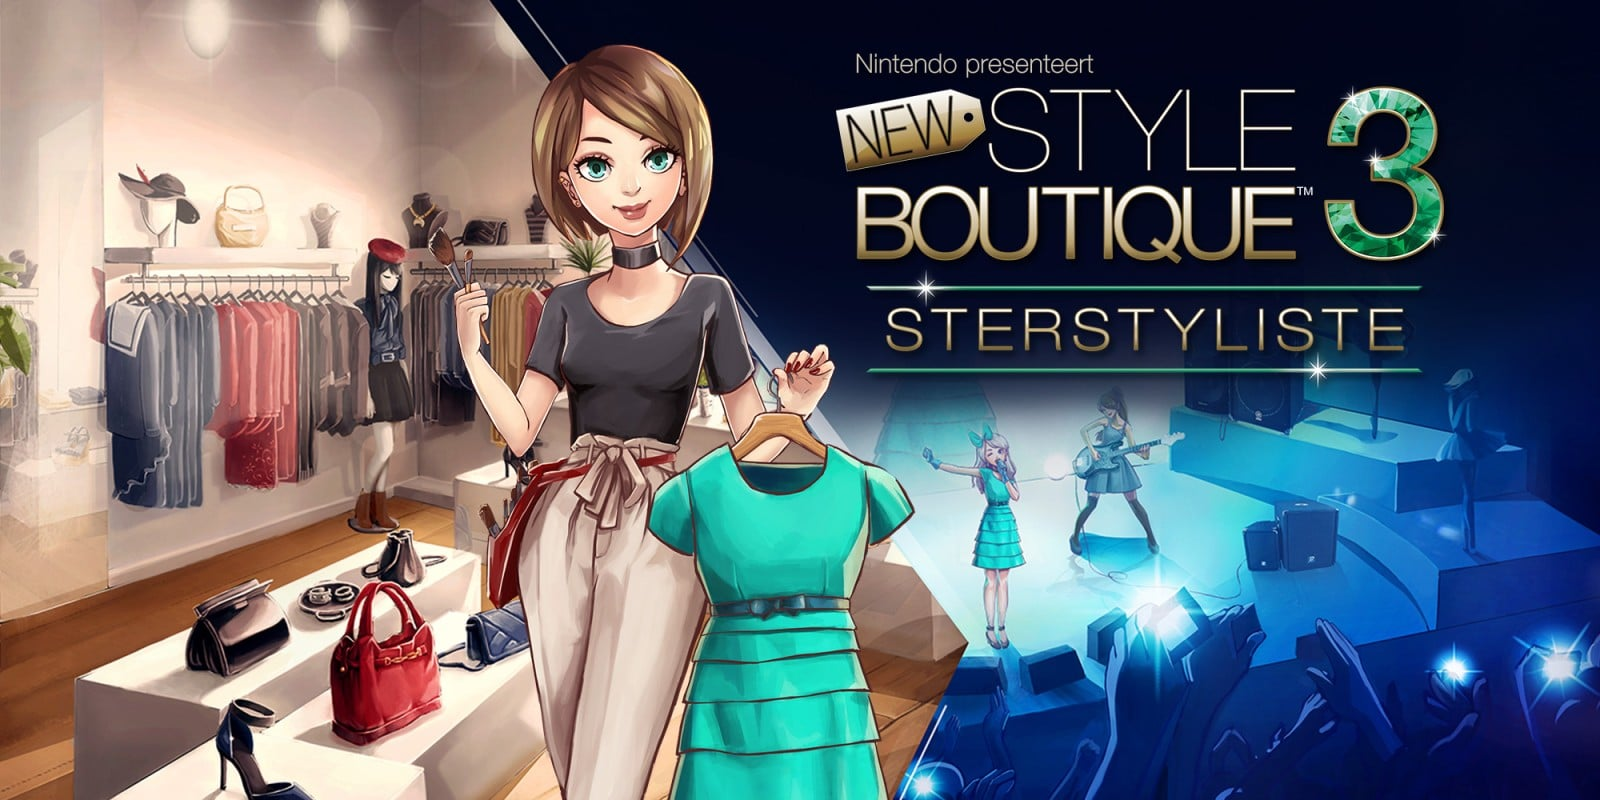 New Style Boutique 3 trailer